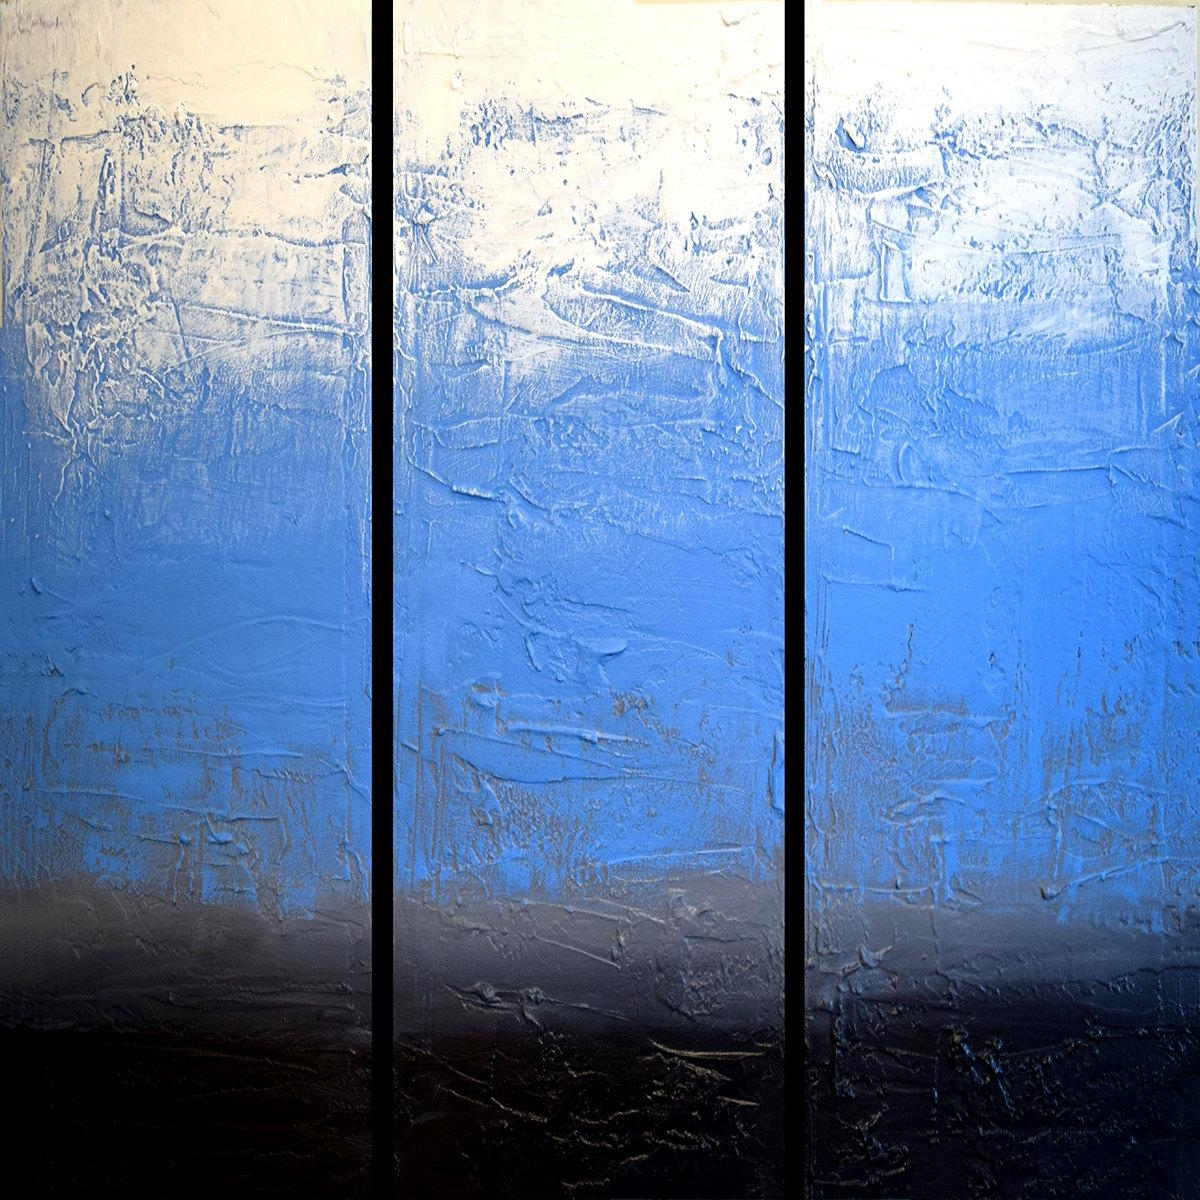 Extra Large Wall Sculpture Art Triptych 3 Panel Wall Art Inside Large Triptych Wall Art (View 17 of 20)